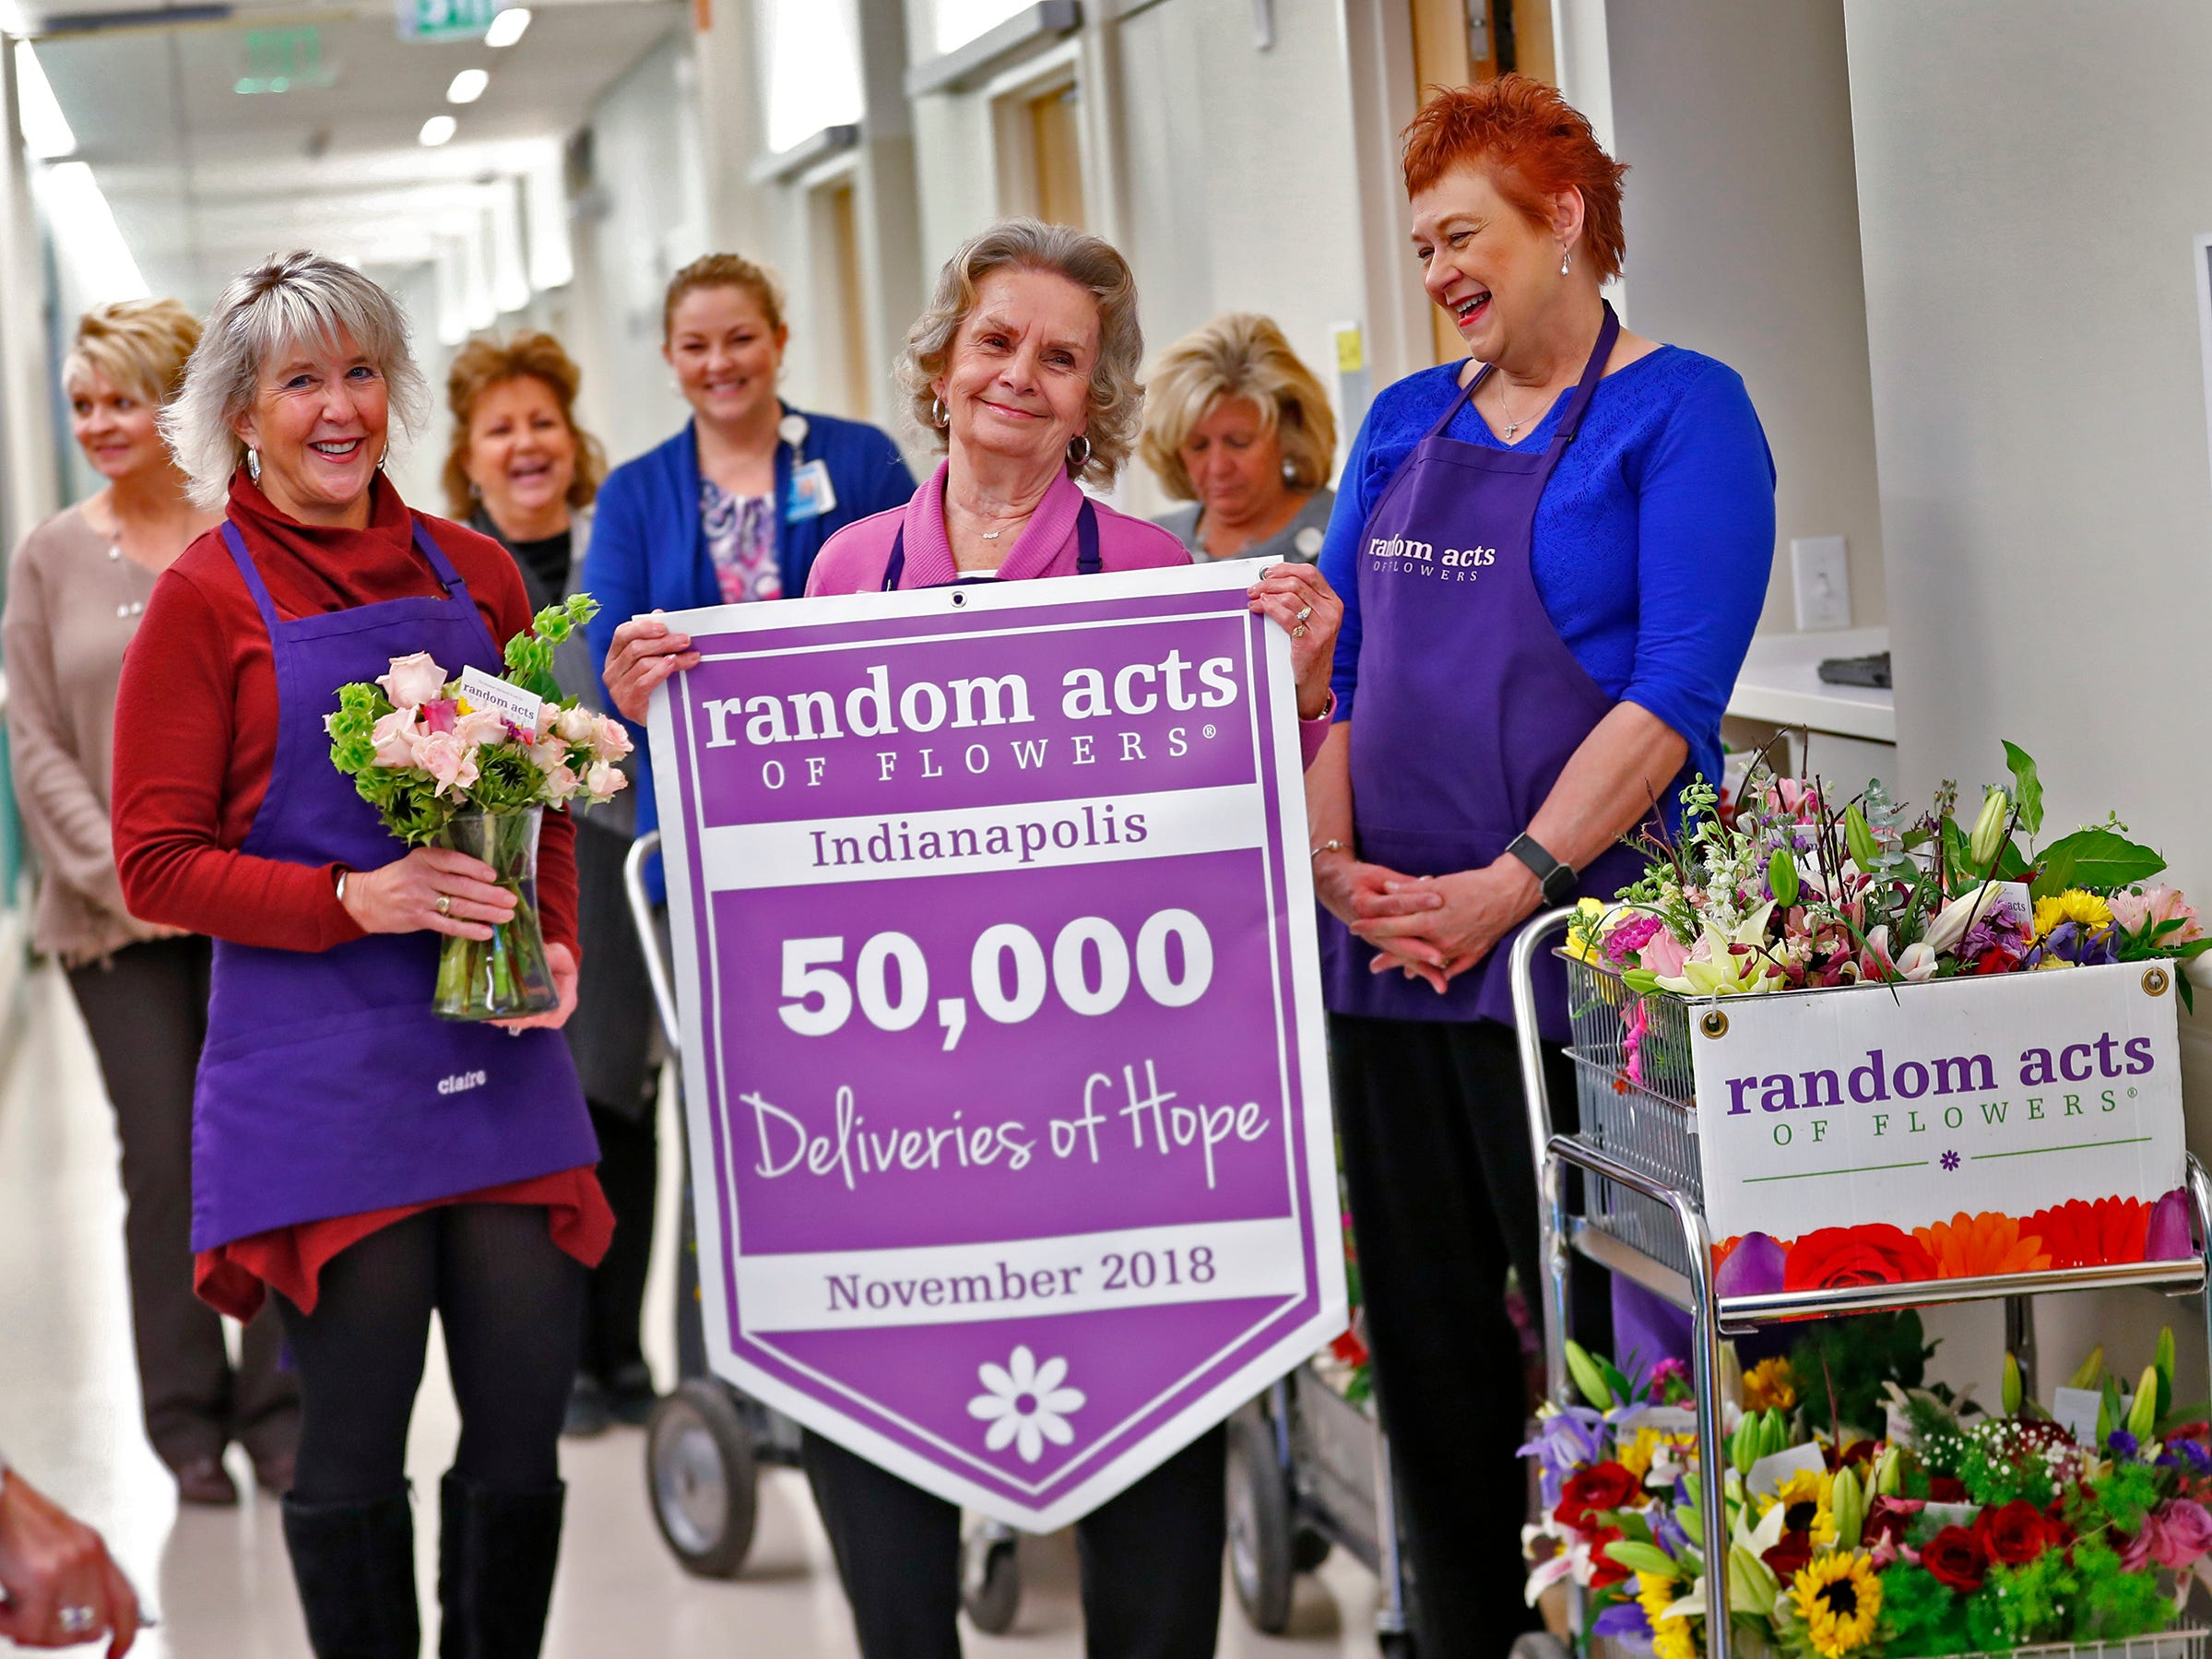 Claire Alexander, from left, Joan Perry, and Kathy Bradfield, with Random Acts of Flowers, get ready to deliver their 50,000th bouquet of flowers at Sidney & Lois Eskenazi Hospital, Thursday, Nov. 29, 2018.  The newest branch of the national floral nonprofit has been delivering the flowers to patients to offer hope, encouragement and smiles, for about two years.